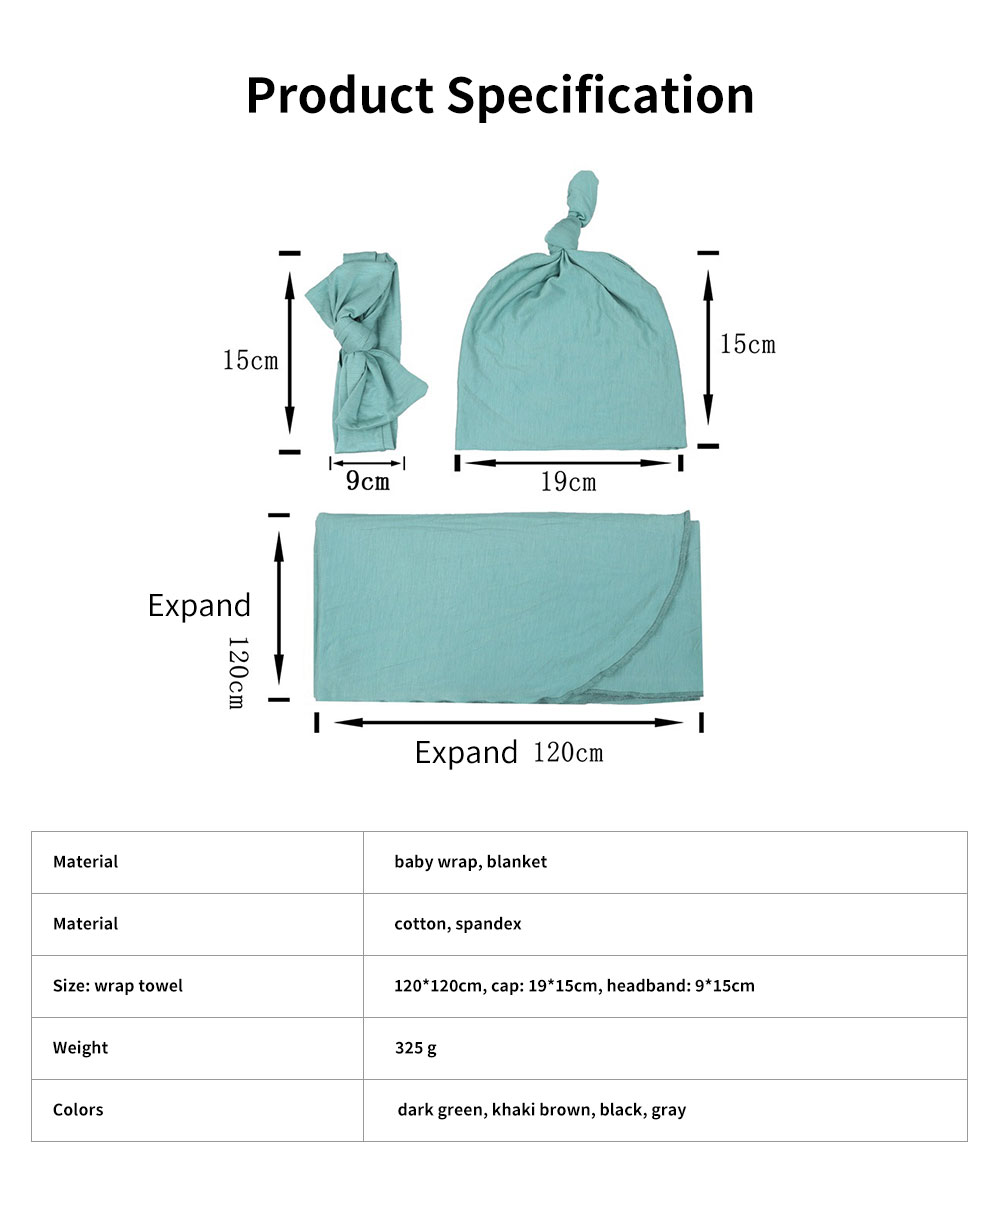 Baby Soft Sleeping Bag Wrap Cotton Spandex Material Prevent Shock Wind Wrapped Towels Shooting Prop for Baby 100 Days 6